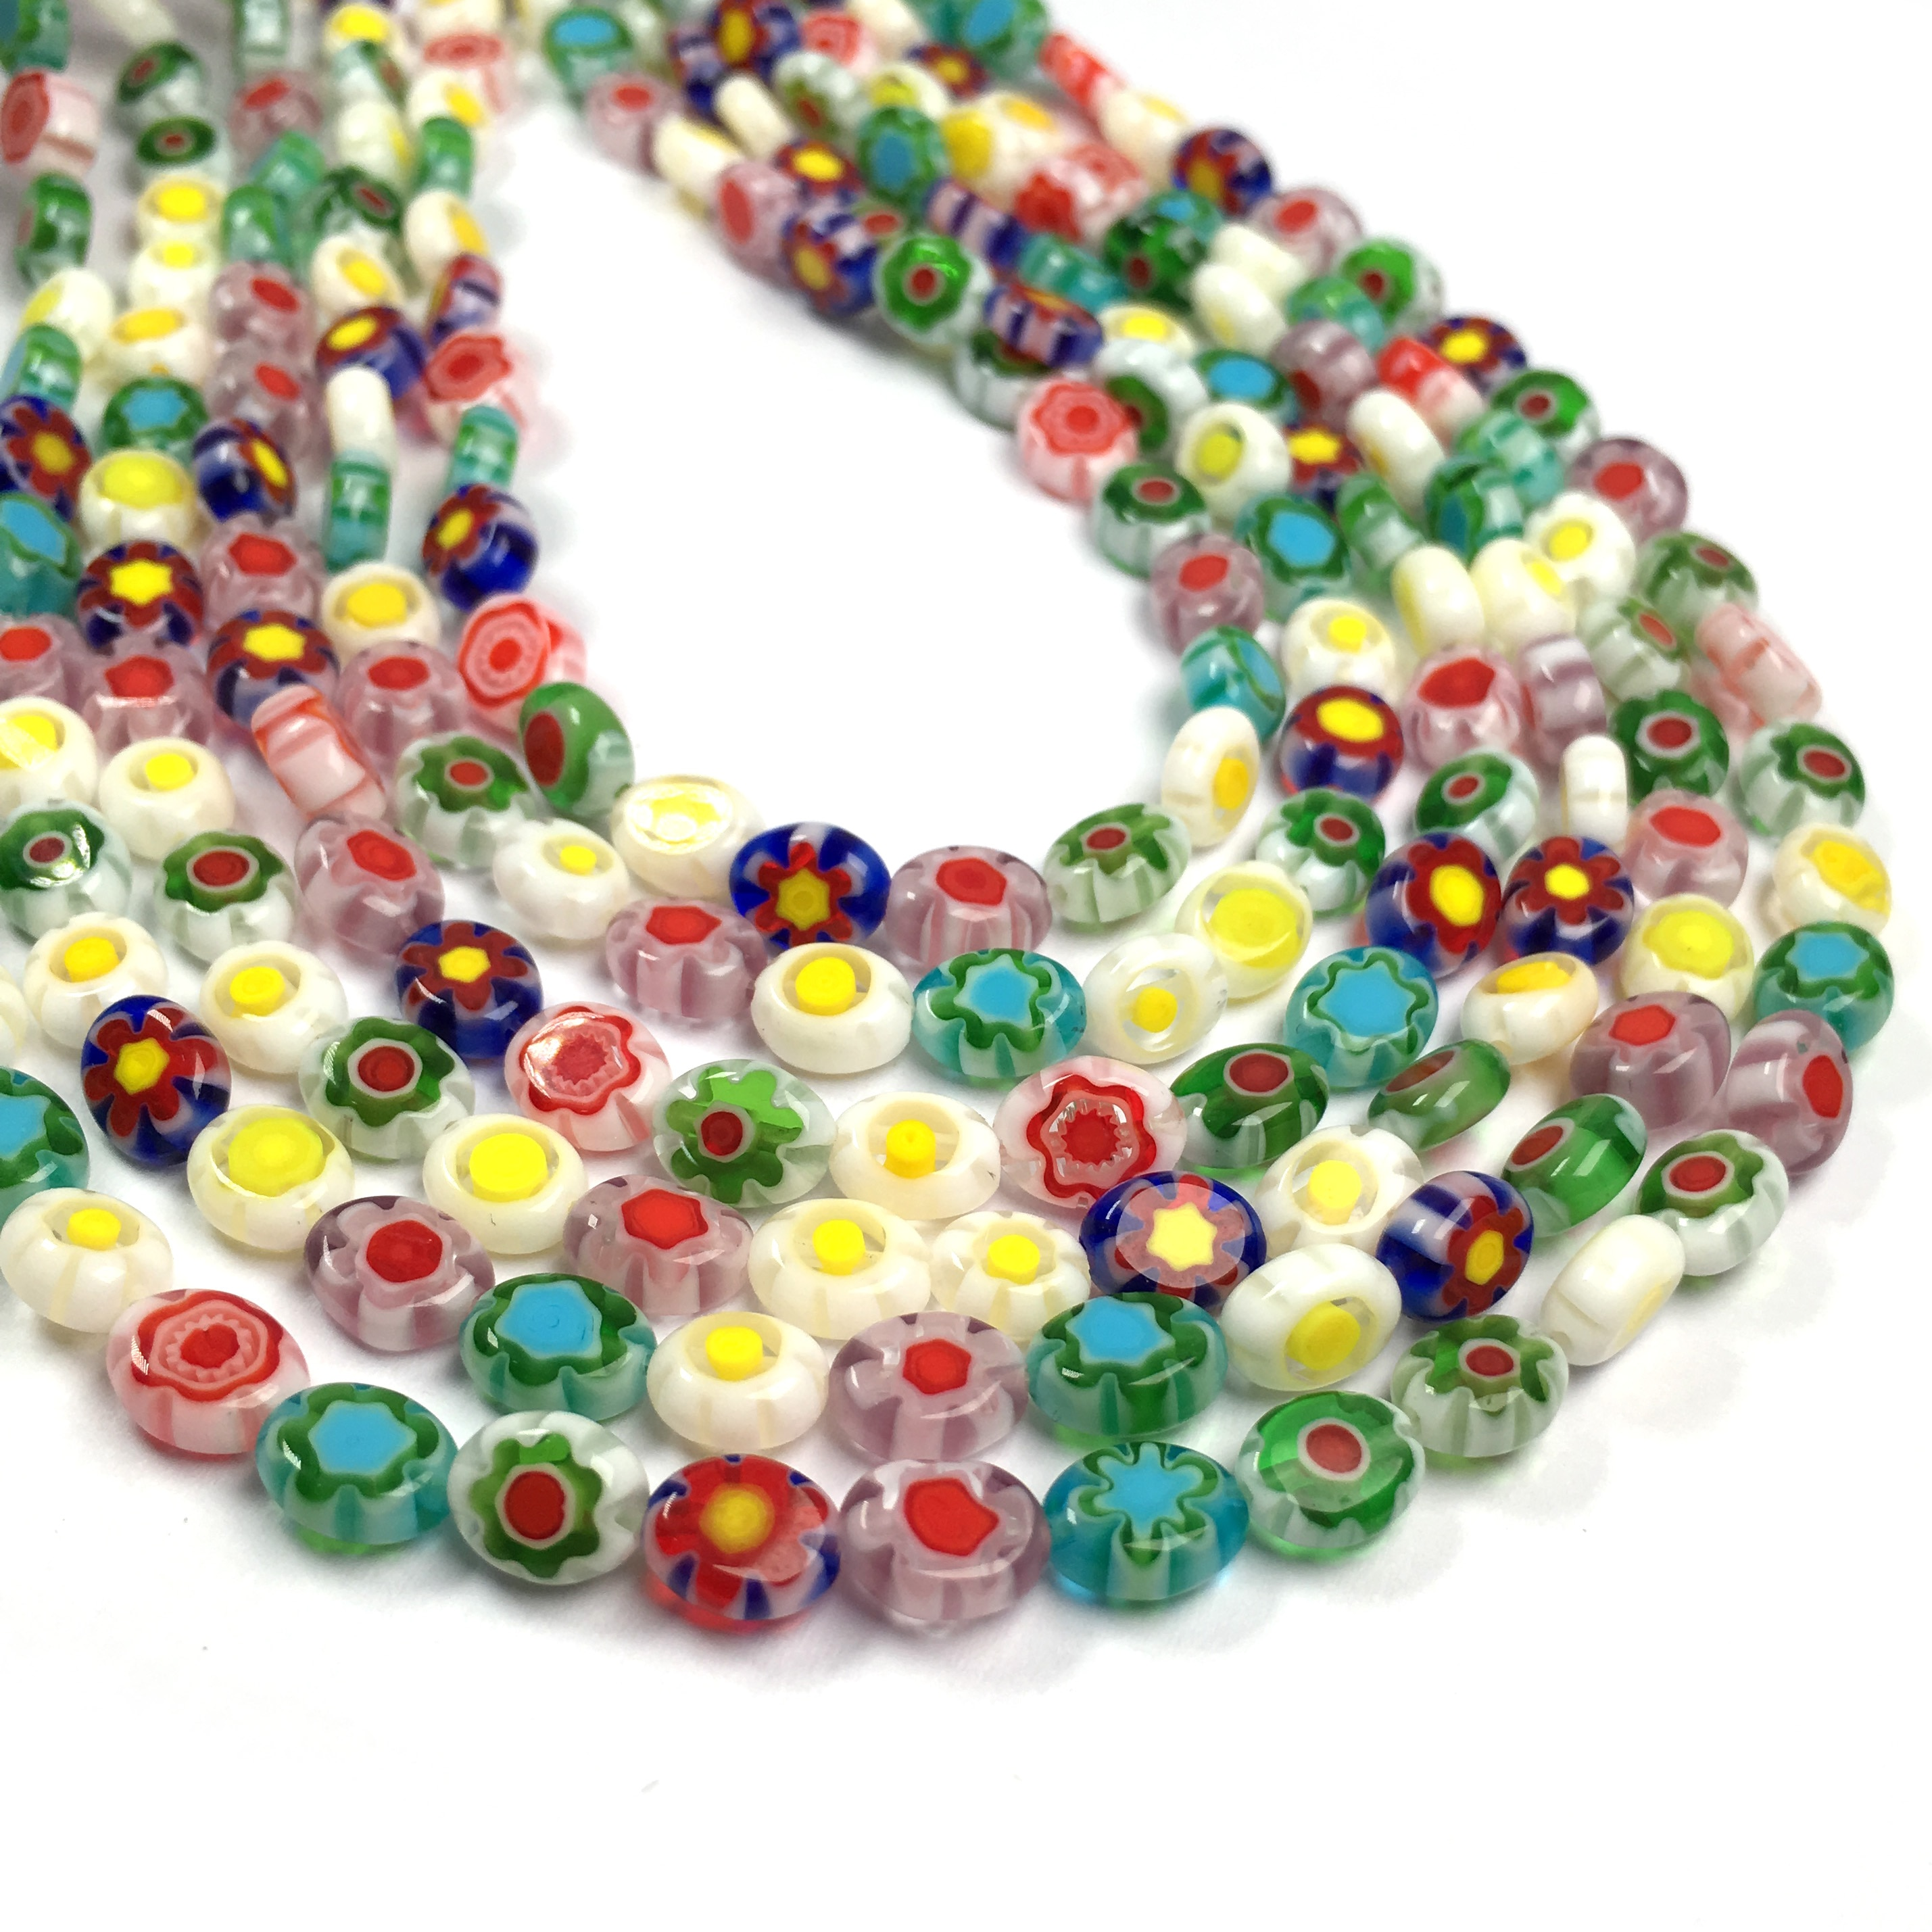 Lampwork Glass Beads Oval Loose Spacer Beads For Jewelry Making DIY Necklace Bracelet Accessories Size 6x8mm  - buy with discount